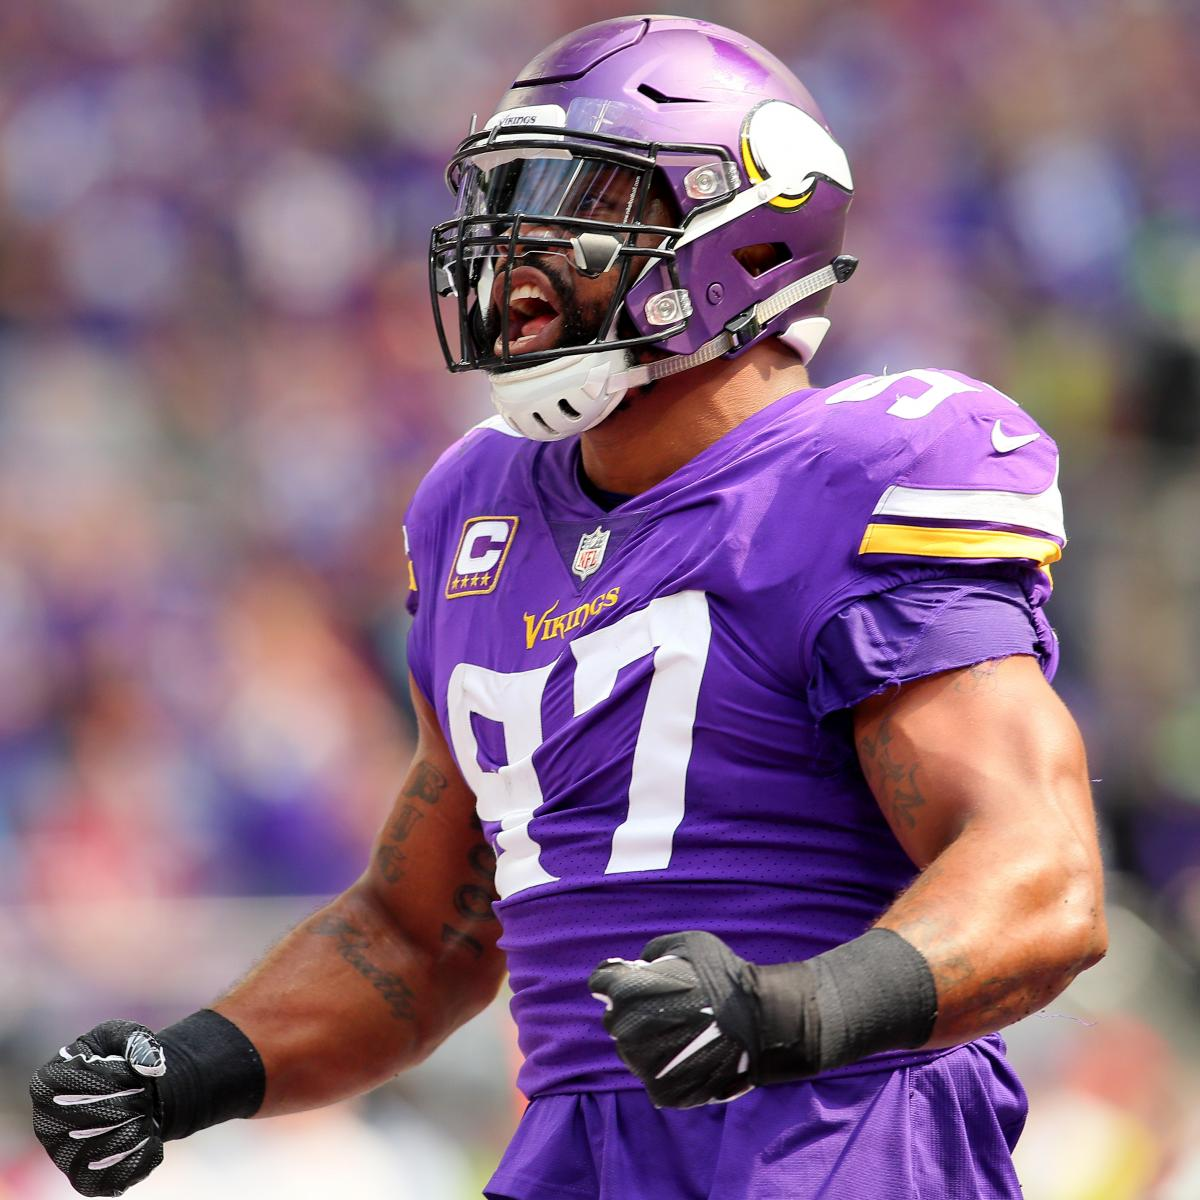 Report: Vikings' Everson Griffen Allegedly Threatened to Shoot Someone at Hotel